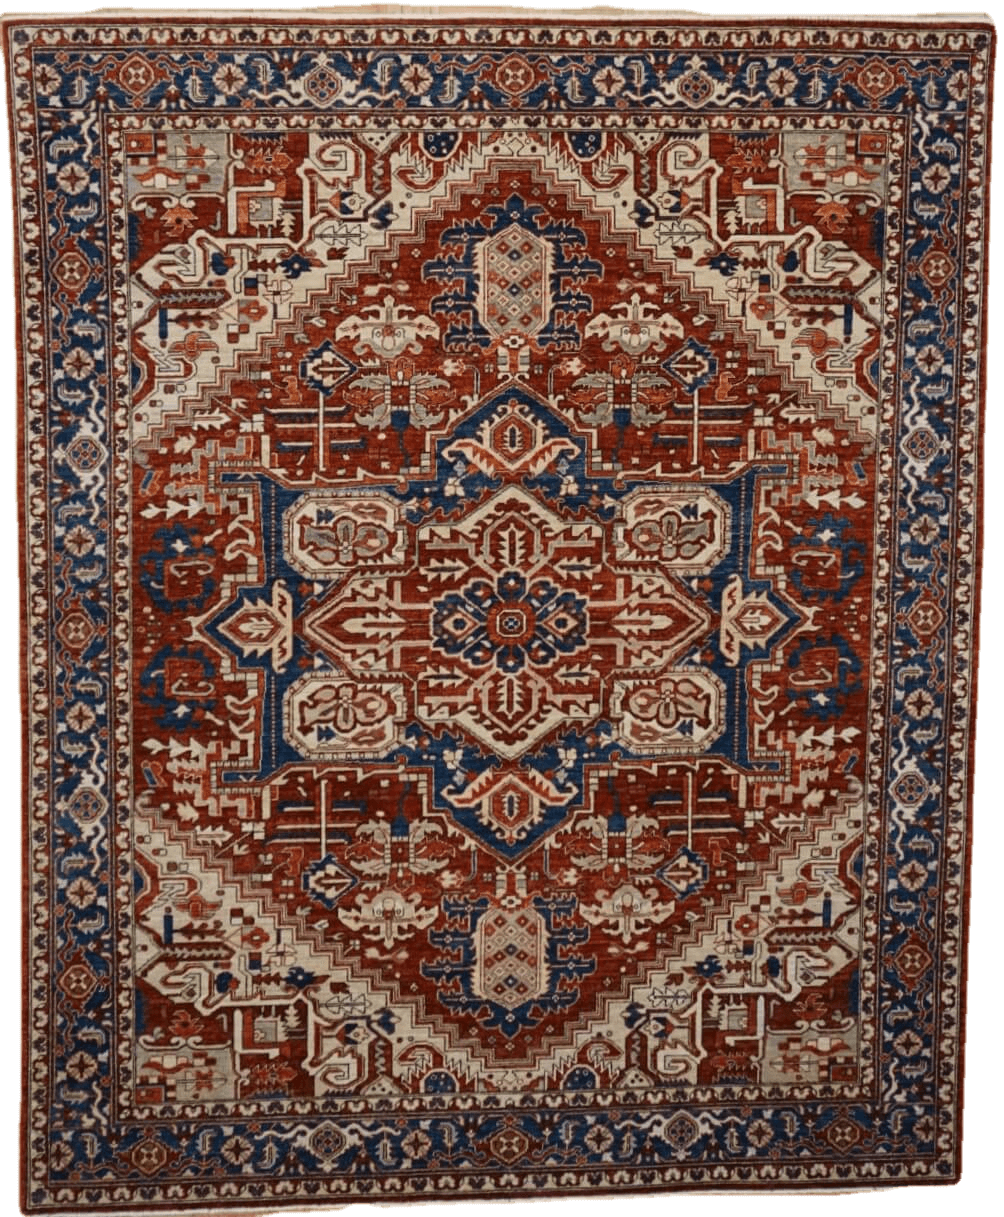 Afghanistan Herriz Rug - Solomon's Collection & Fine Rugs